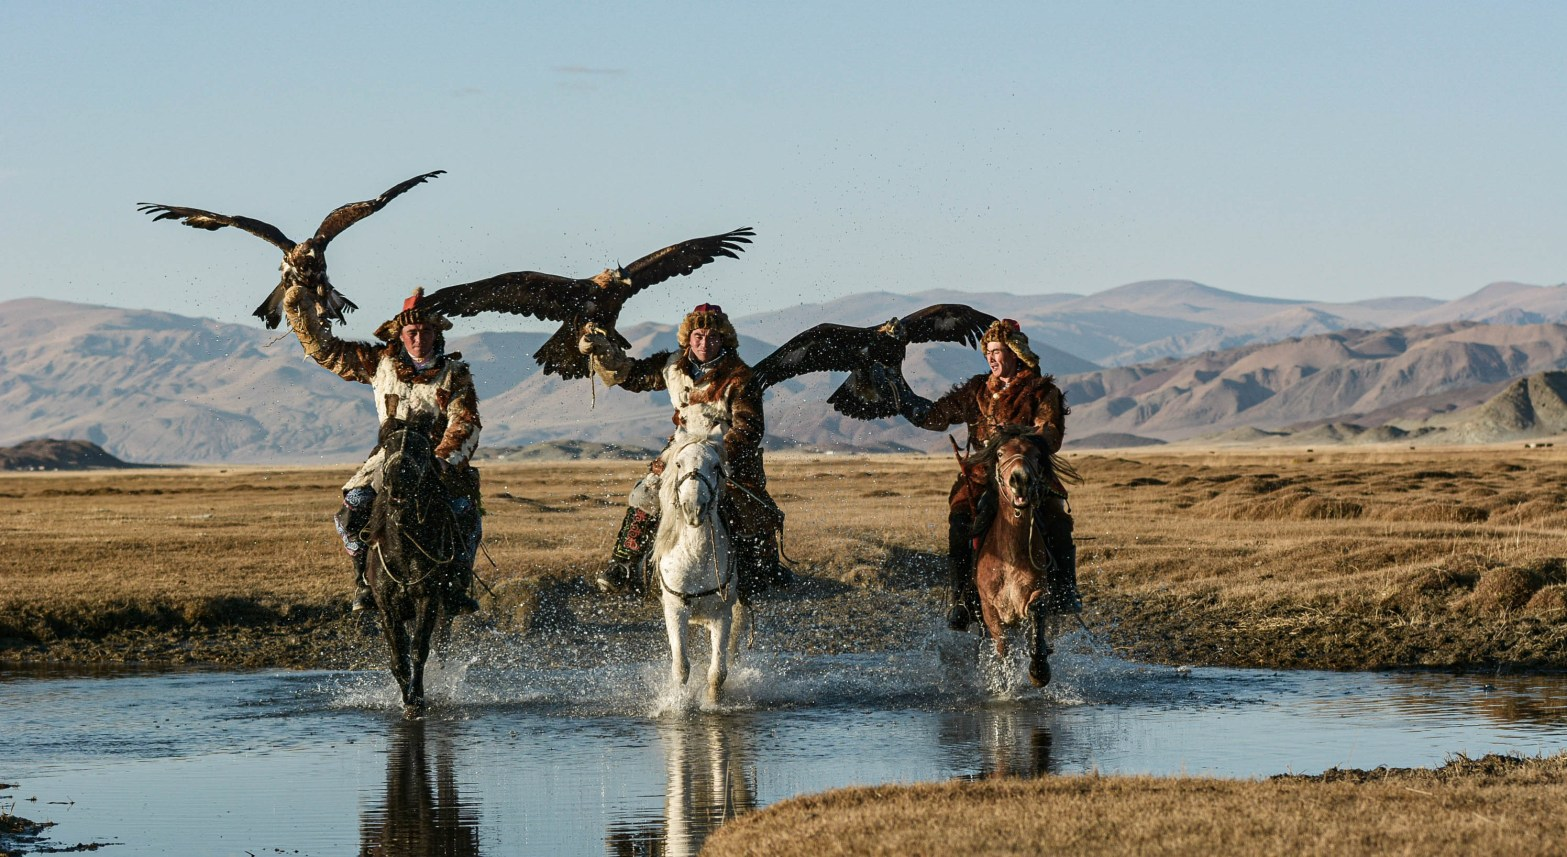 Three Mongolian eagle hunters at a full gallop showing off their skills